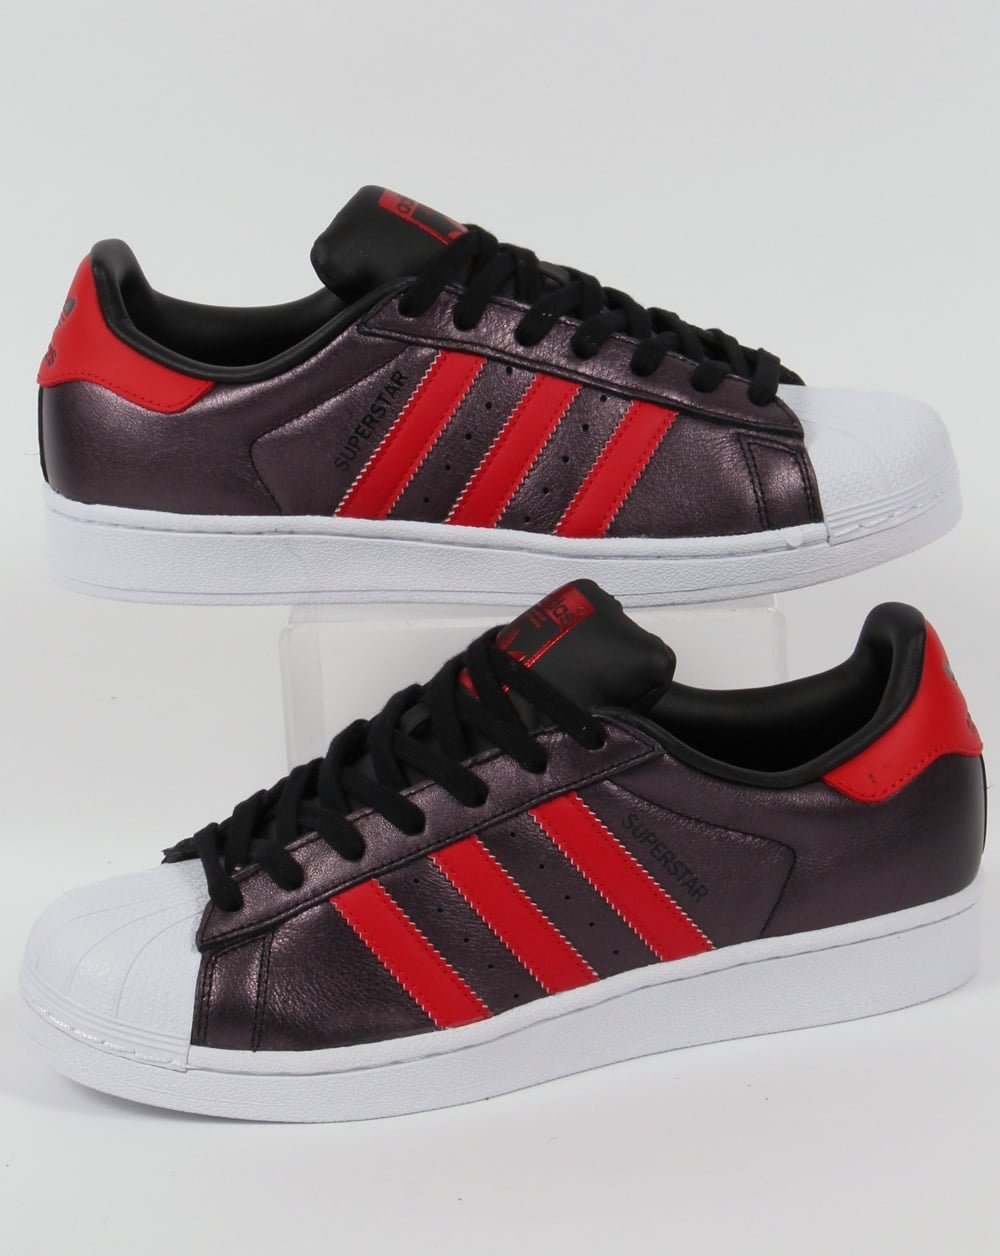 a3099d40e17902 hot adidas originals superstar adidas originals superstar ee595 a9ae1  new  zealand adidas superstar trainers black red 81630 eb56a